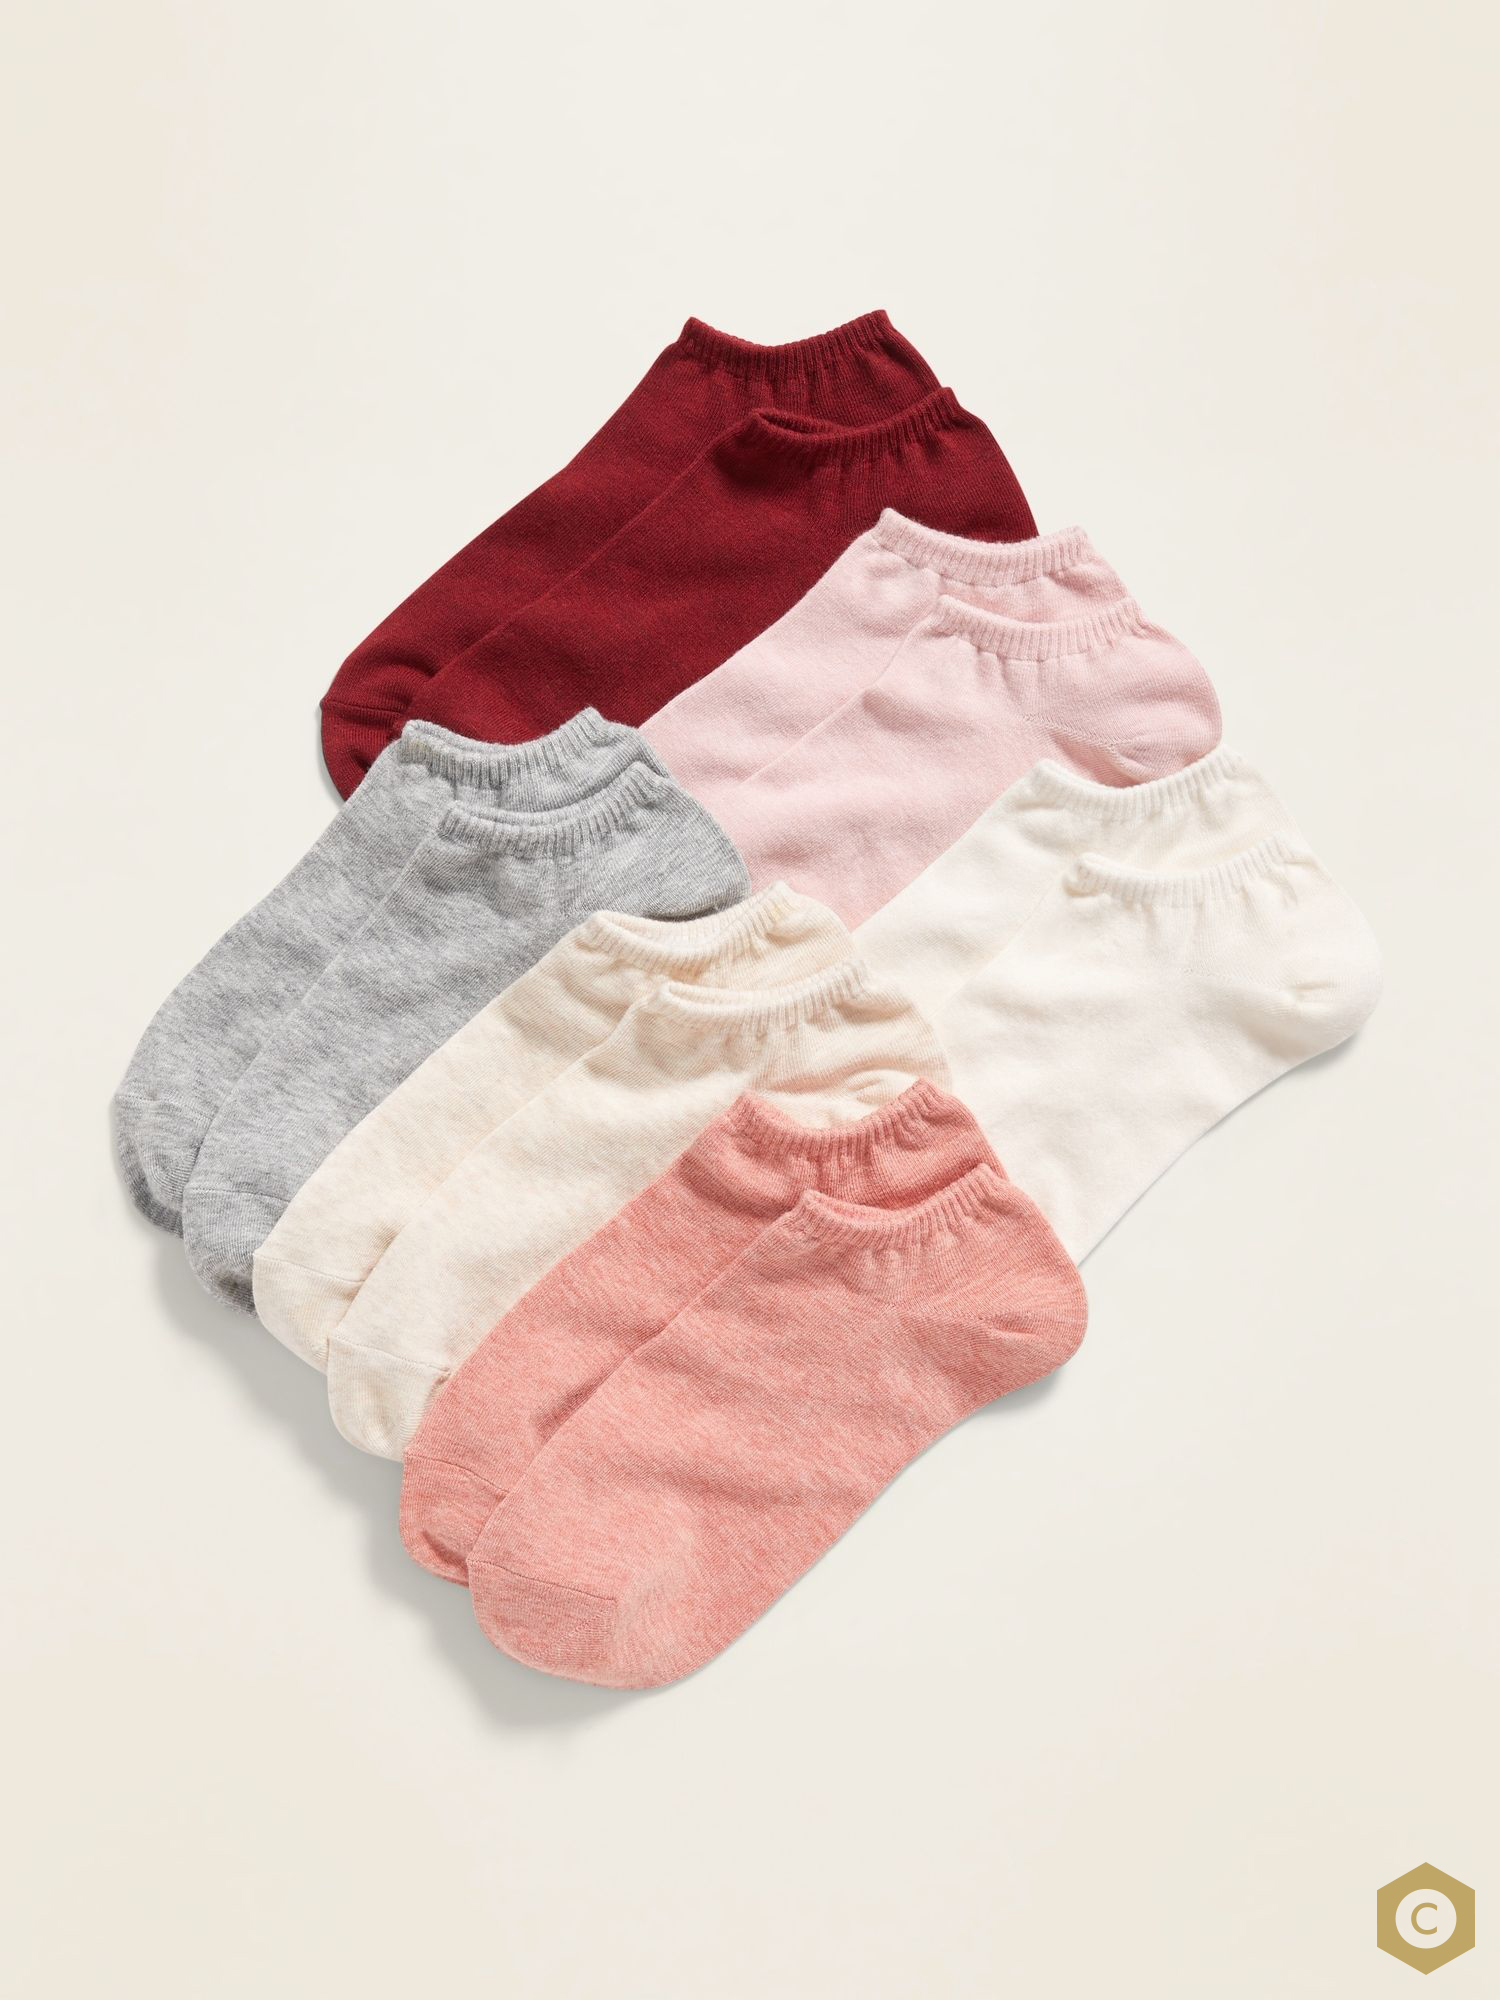 Code 6 Pairs Cotton Ankle Socks For Women  Cotton Ankle Socks For Men  No Show Low Cut Socks For Women  Business Casual Socks For Women - 3 Random colors